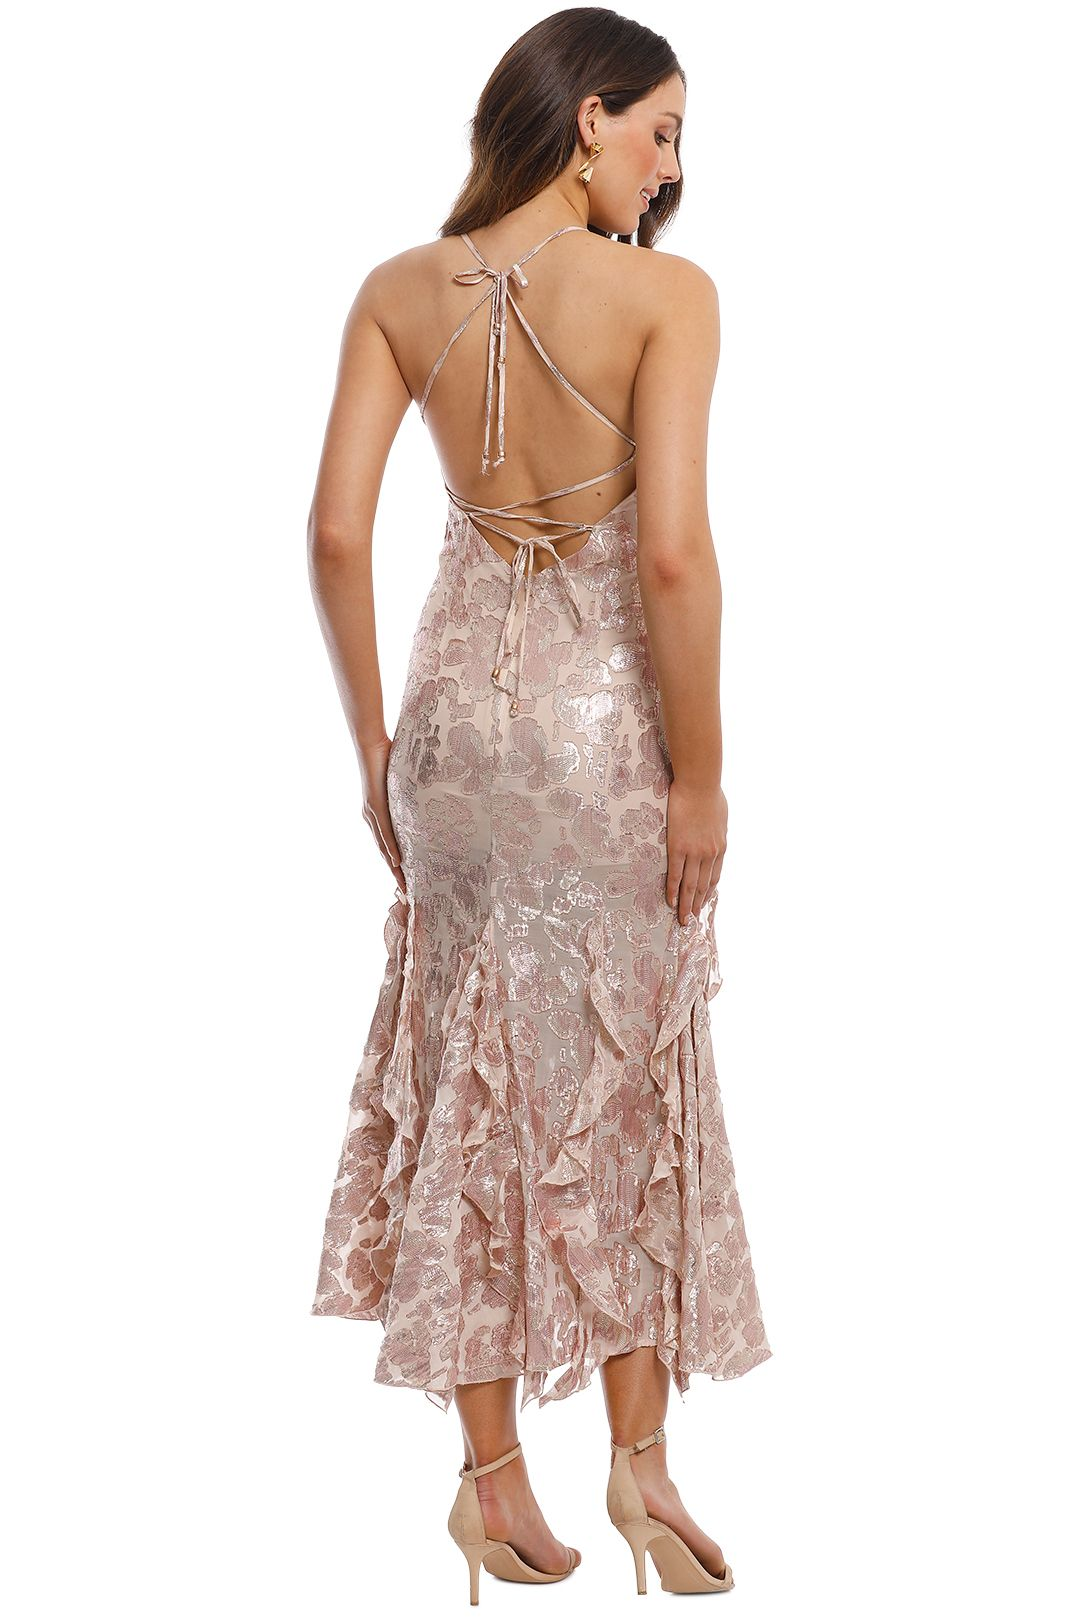 Alice McCall - Best of You Dress - Champagne - Back